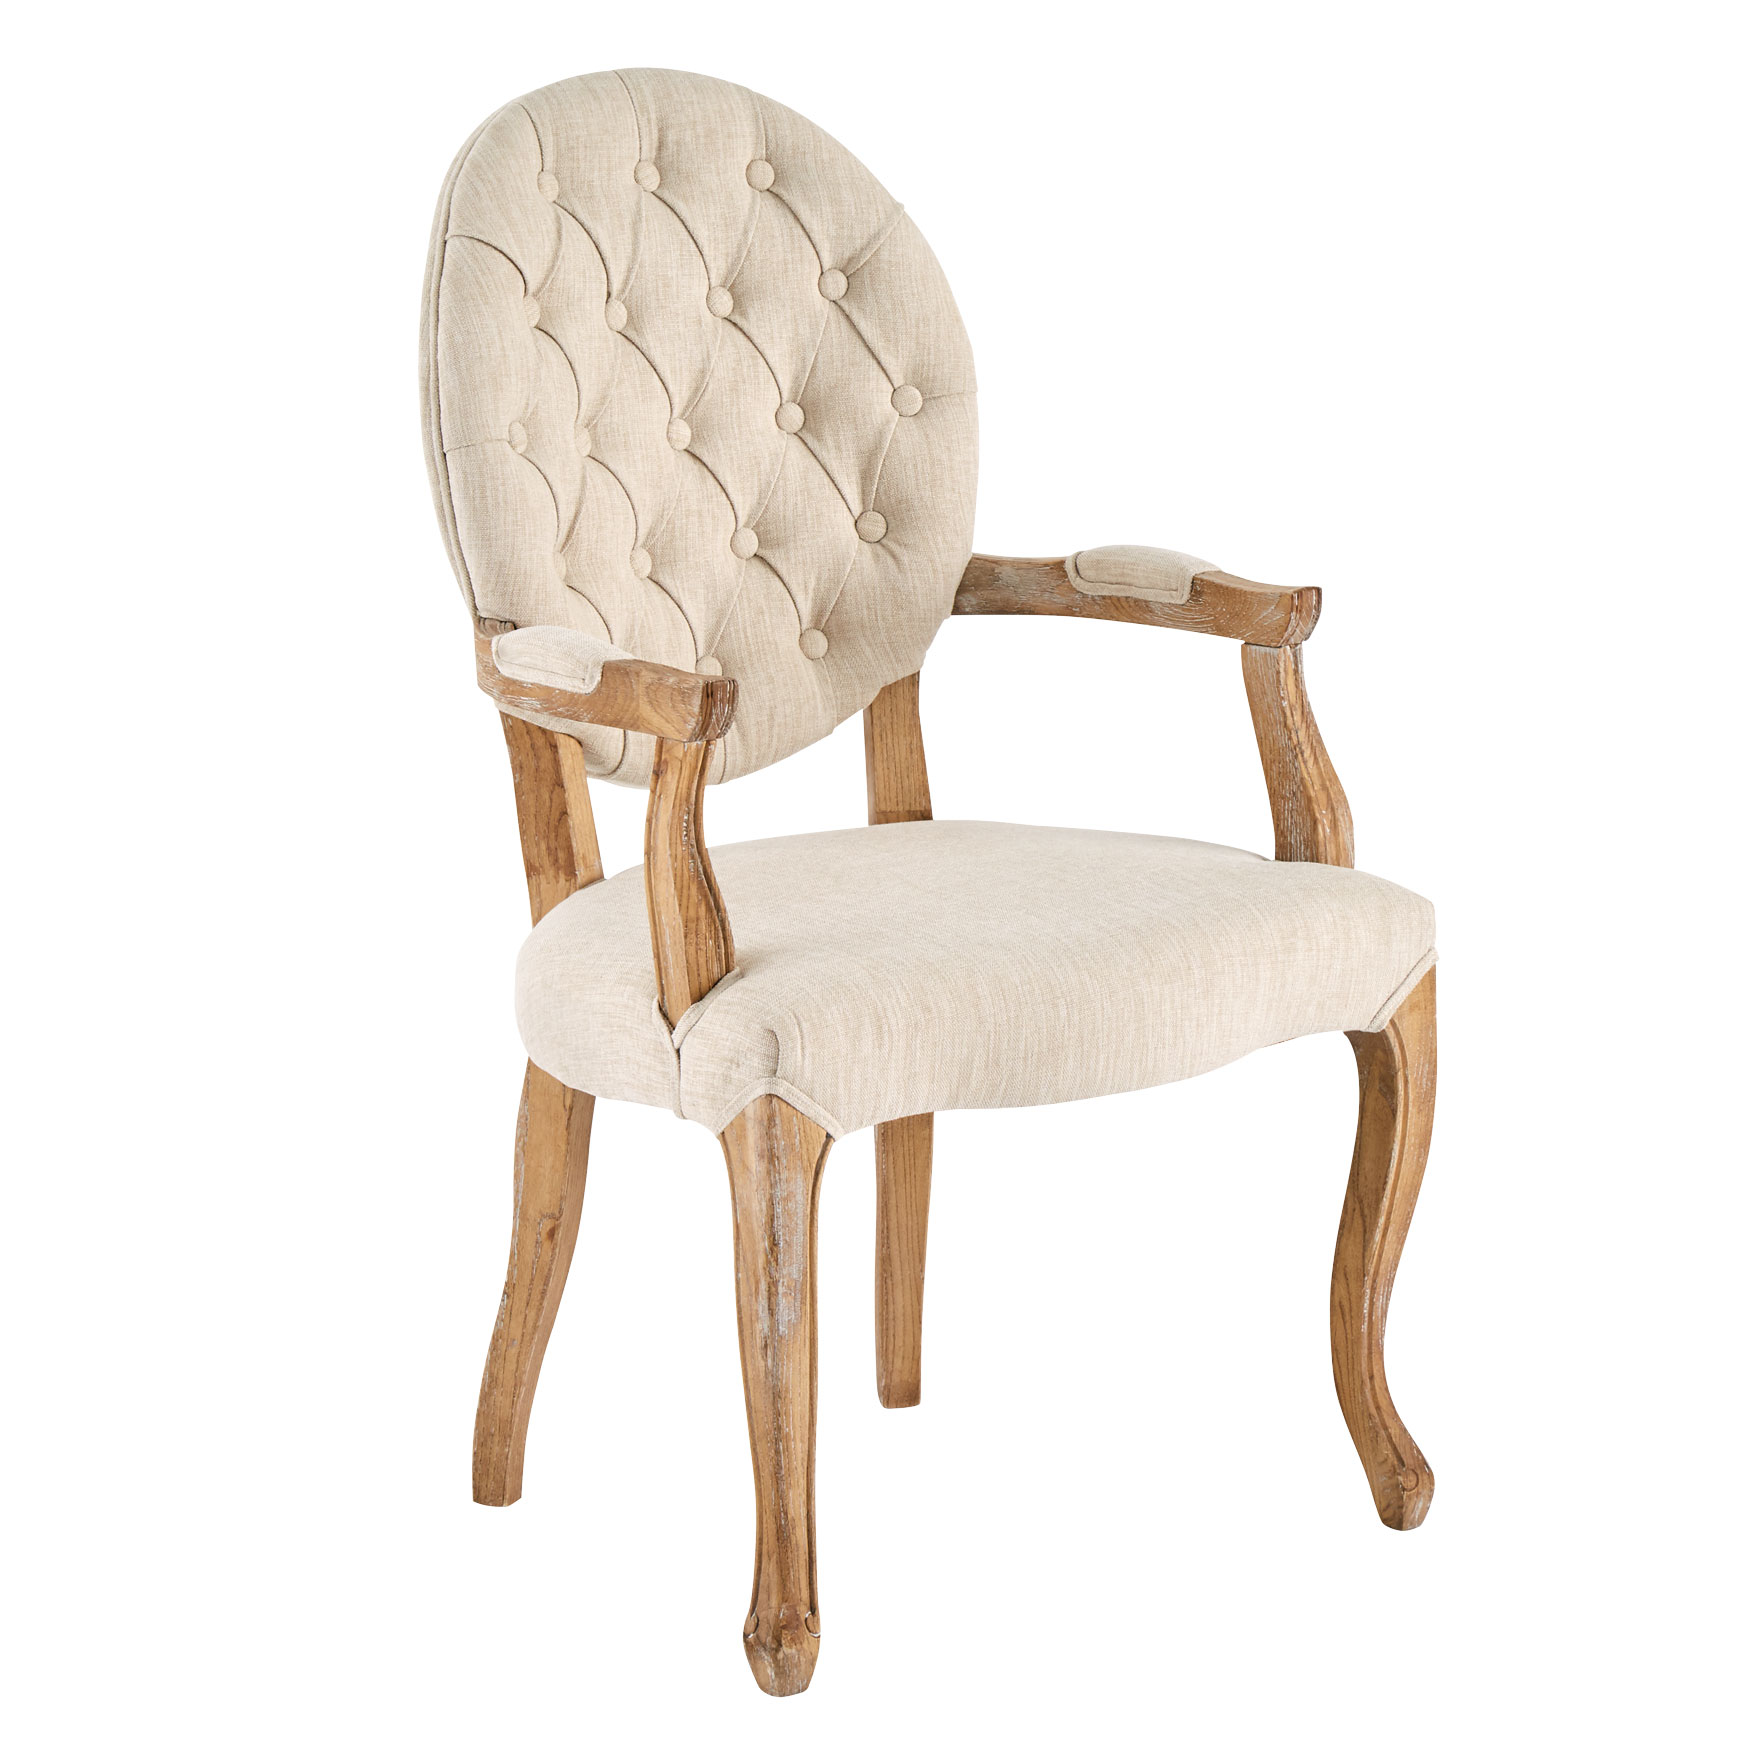 Upholstered Tufted Arm Chair, NATURAL